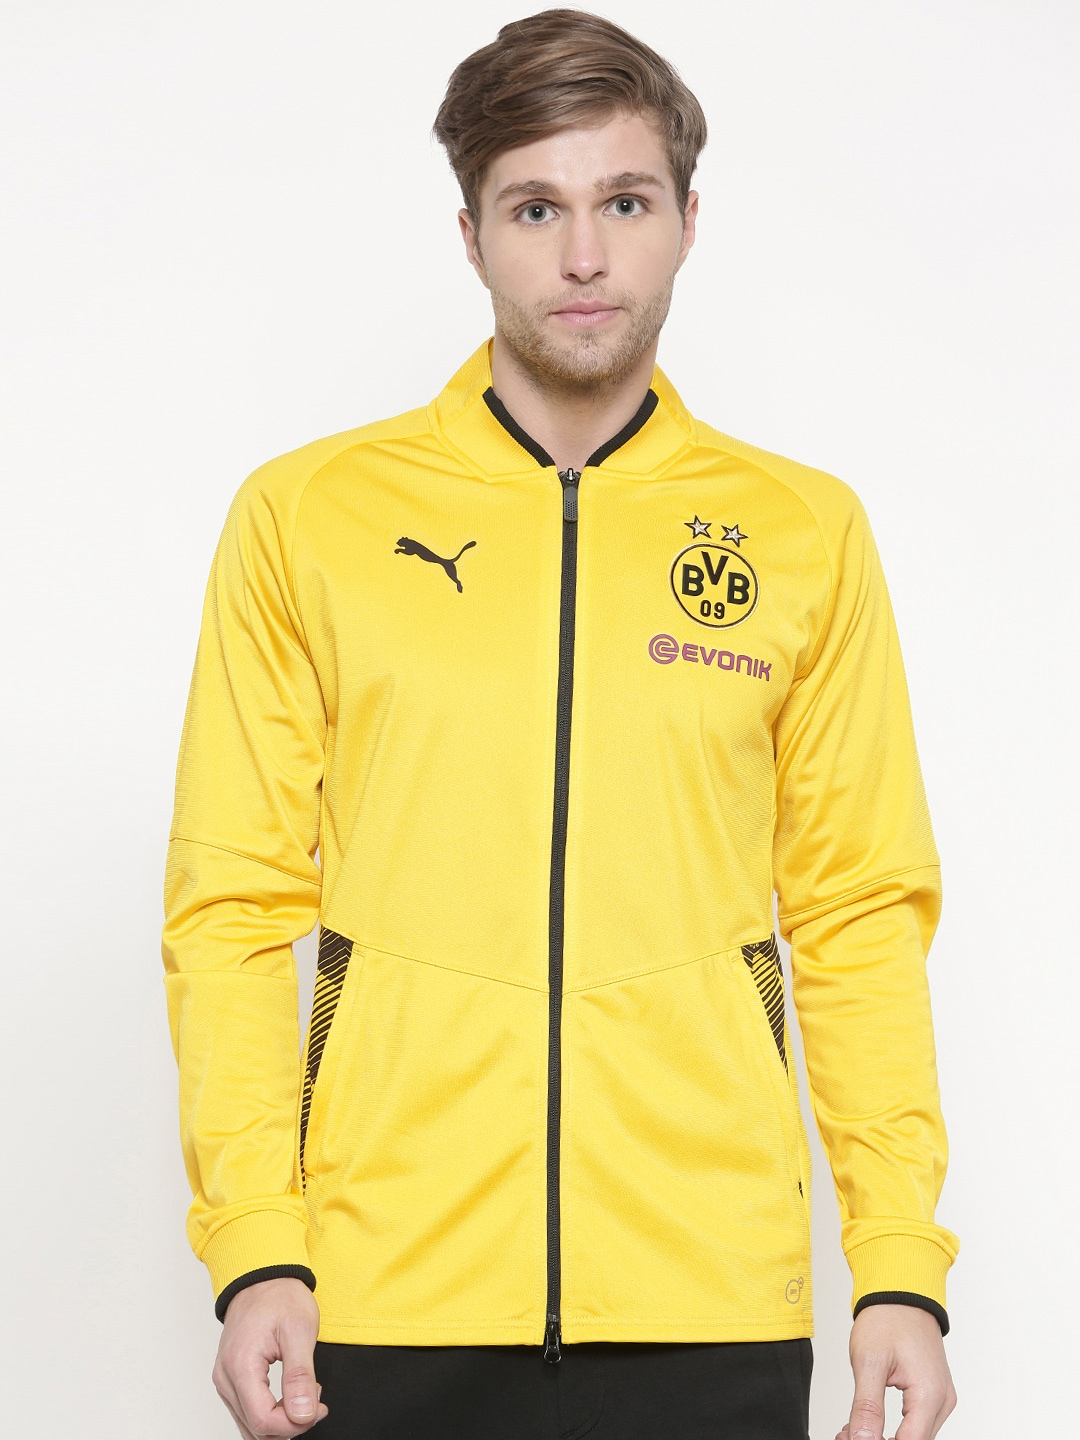 a0930a3fea0d Puma Yellow Jacket - Buy Puma Yellow Jacket online in India